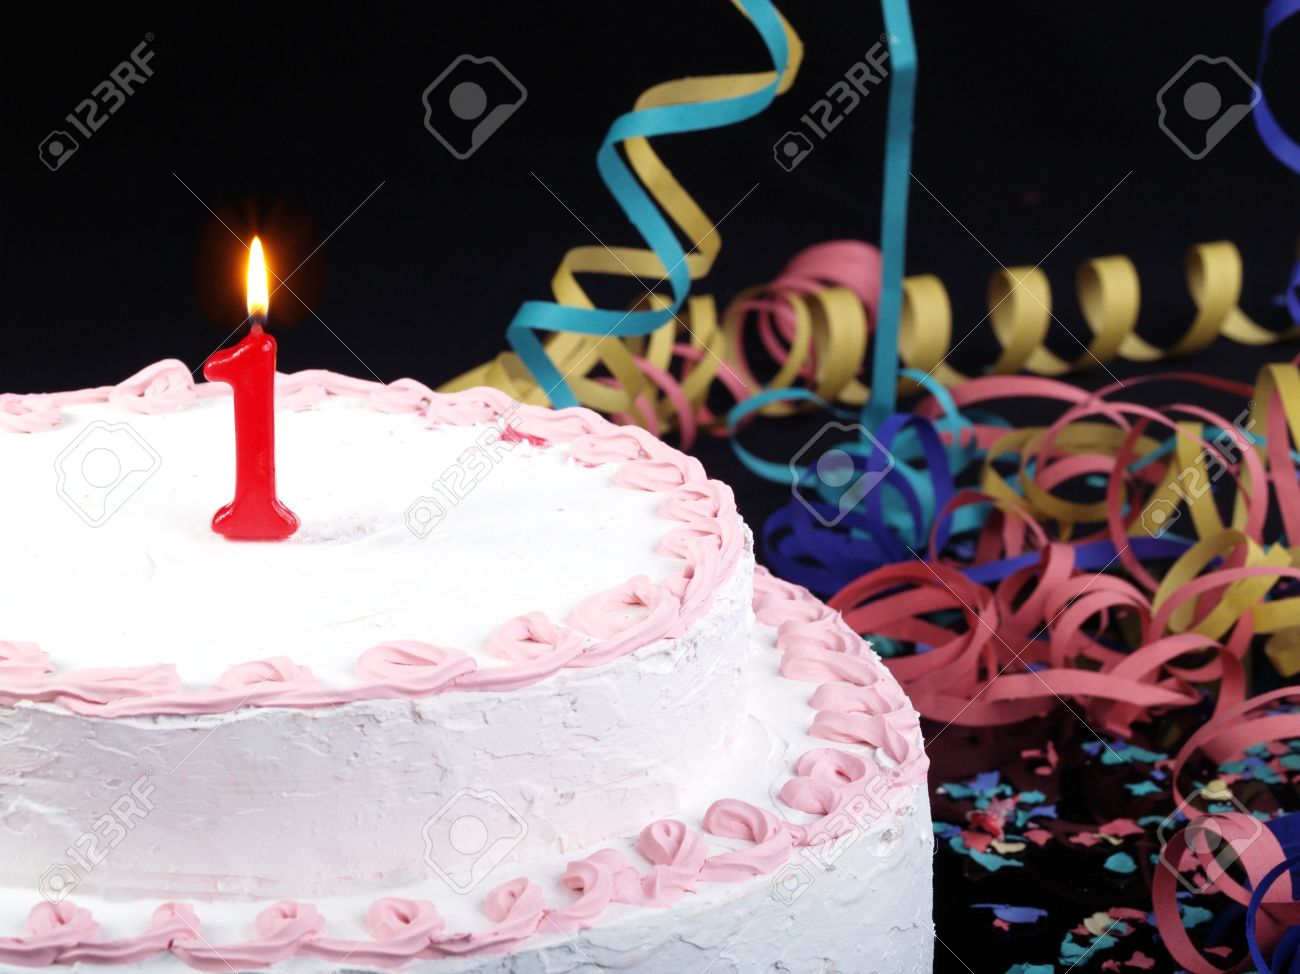 Birthday Cake With Red Candles Showing No 1 Stock Photo